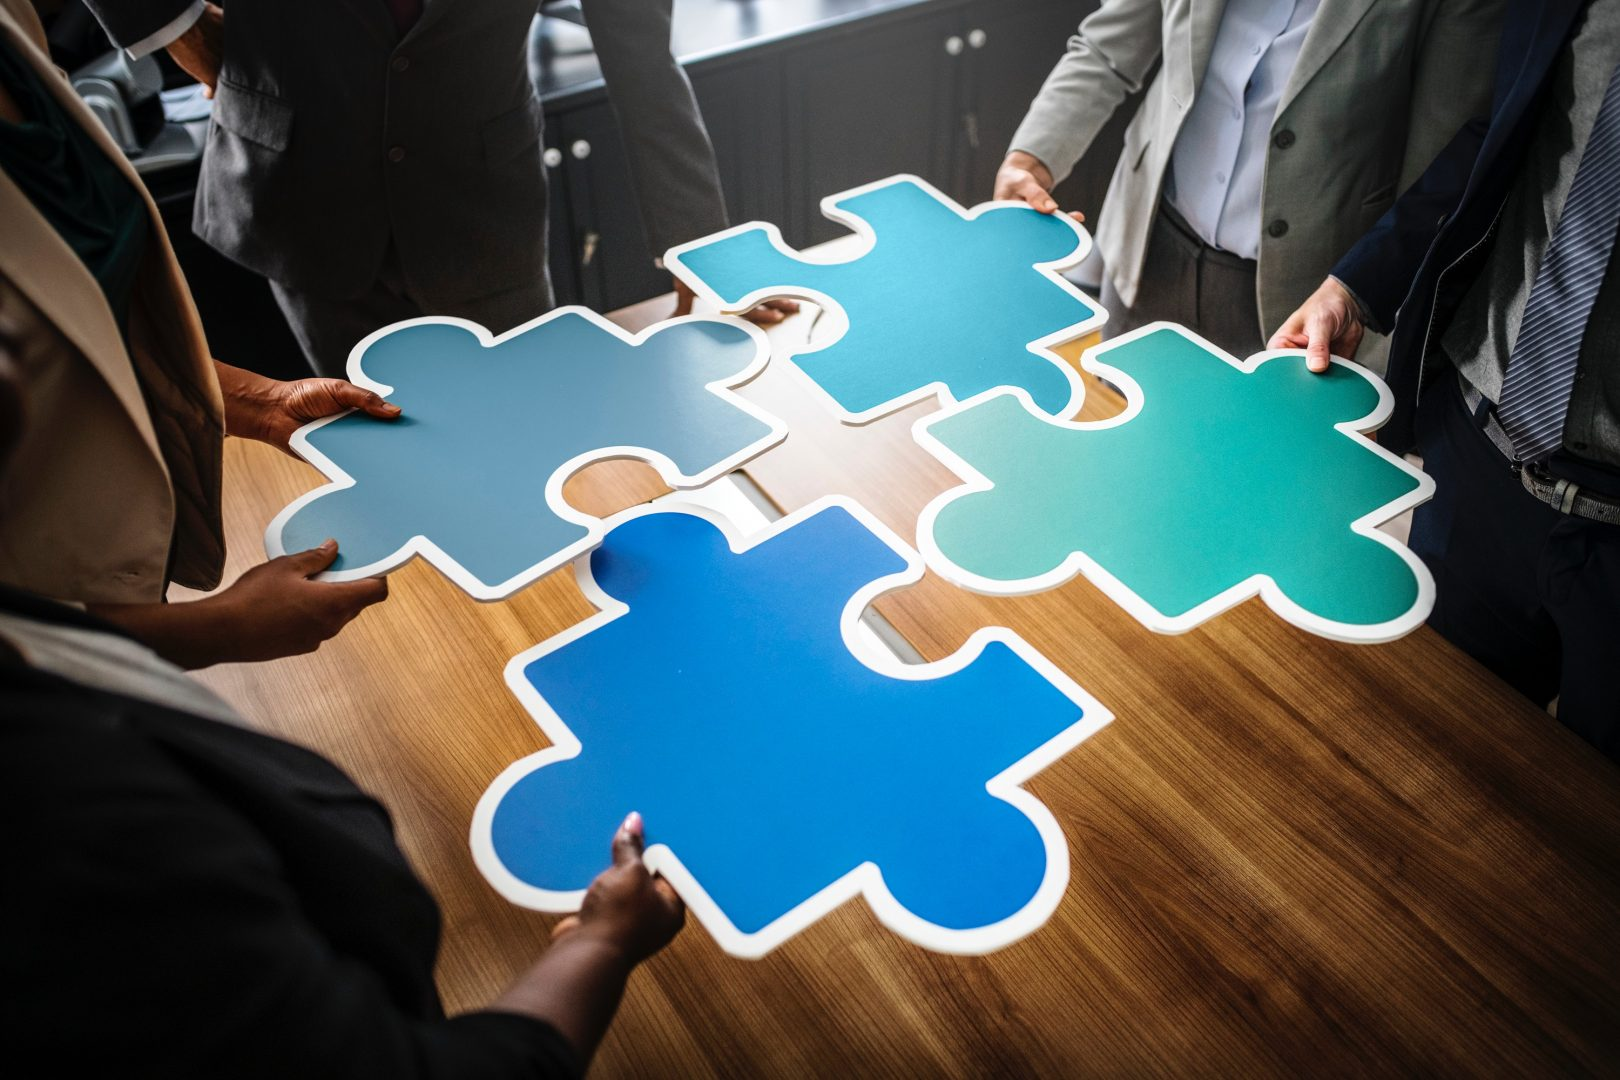 Four people putting together big blue puzzle pieces